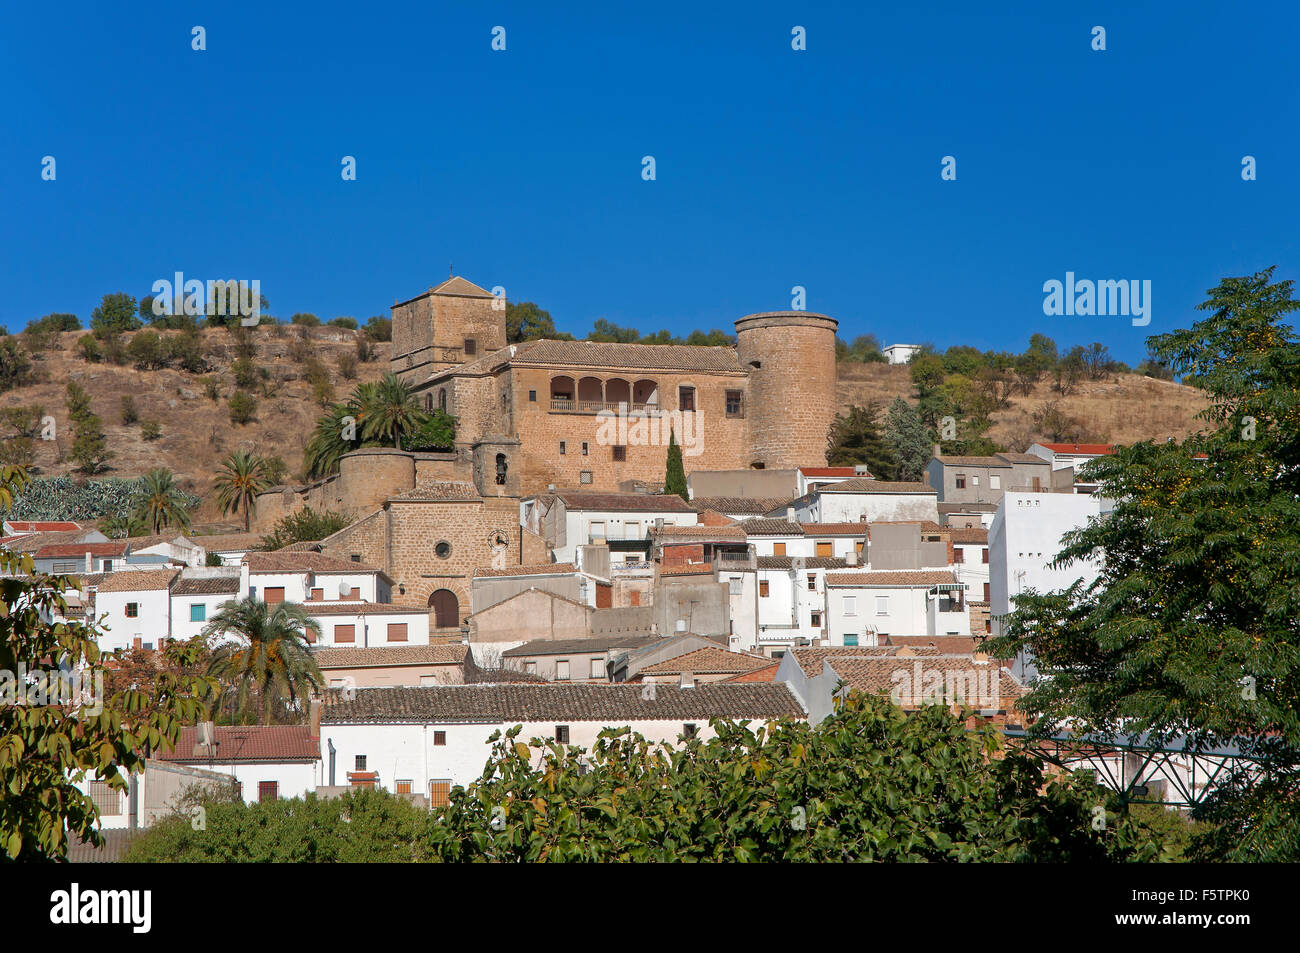 Castle and town, Canena, Jaen province, Region of Andalusia, Spain, Europe - Stock Image